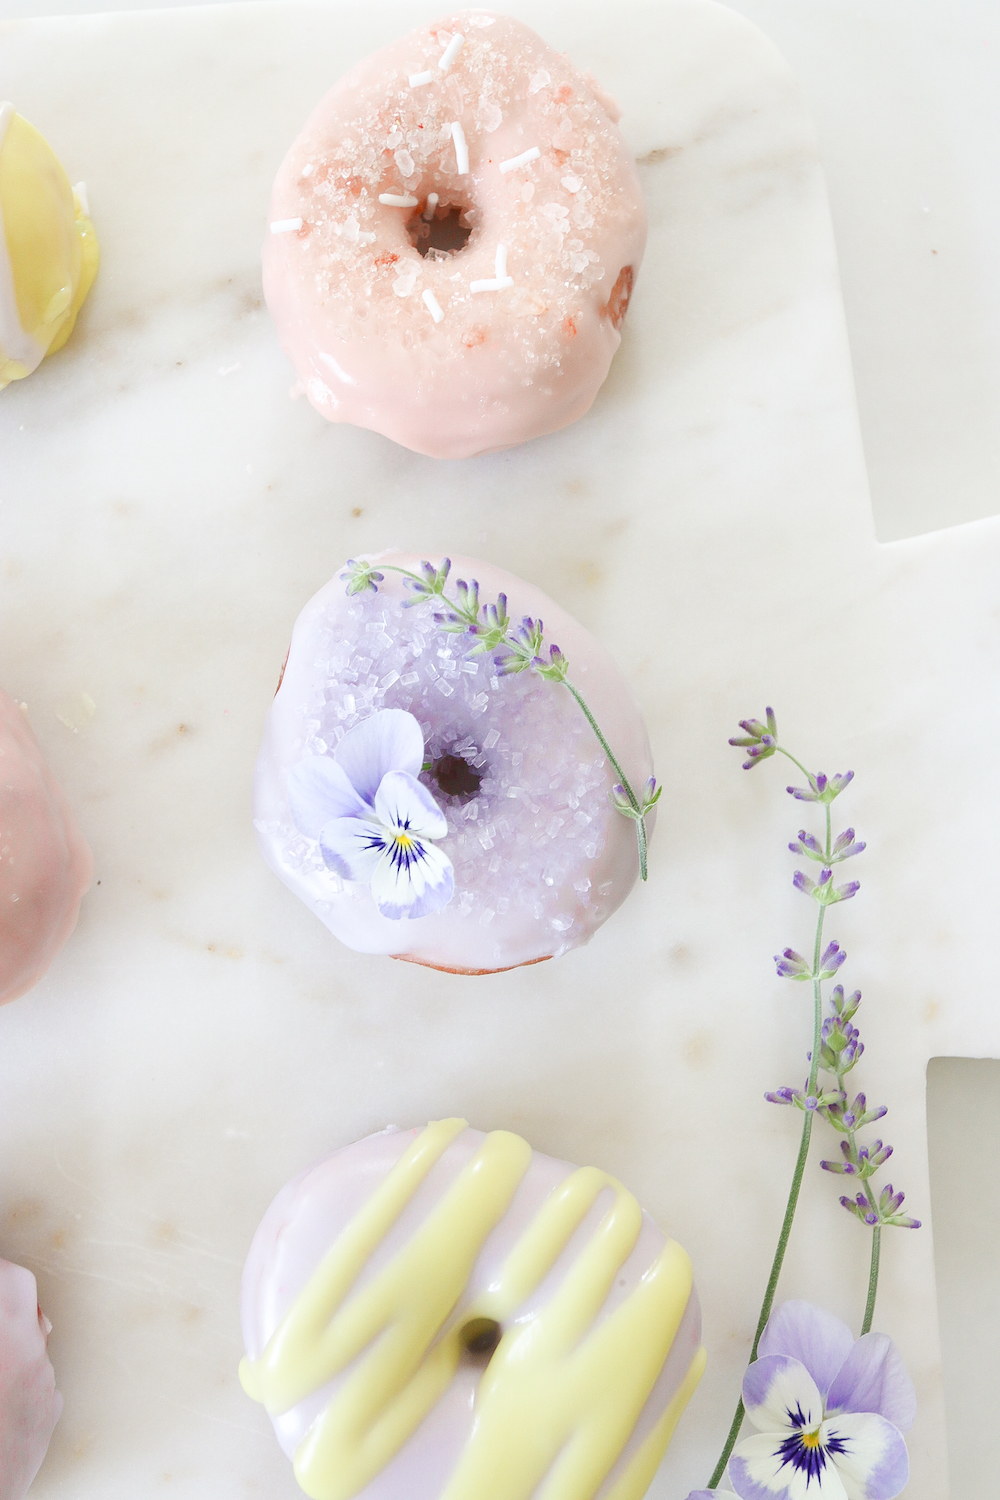 Mini Donut Sprinkles DIY How to Make Donuts Donut Recipe Monika Hibbs